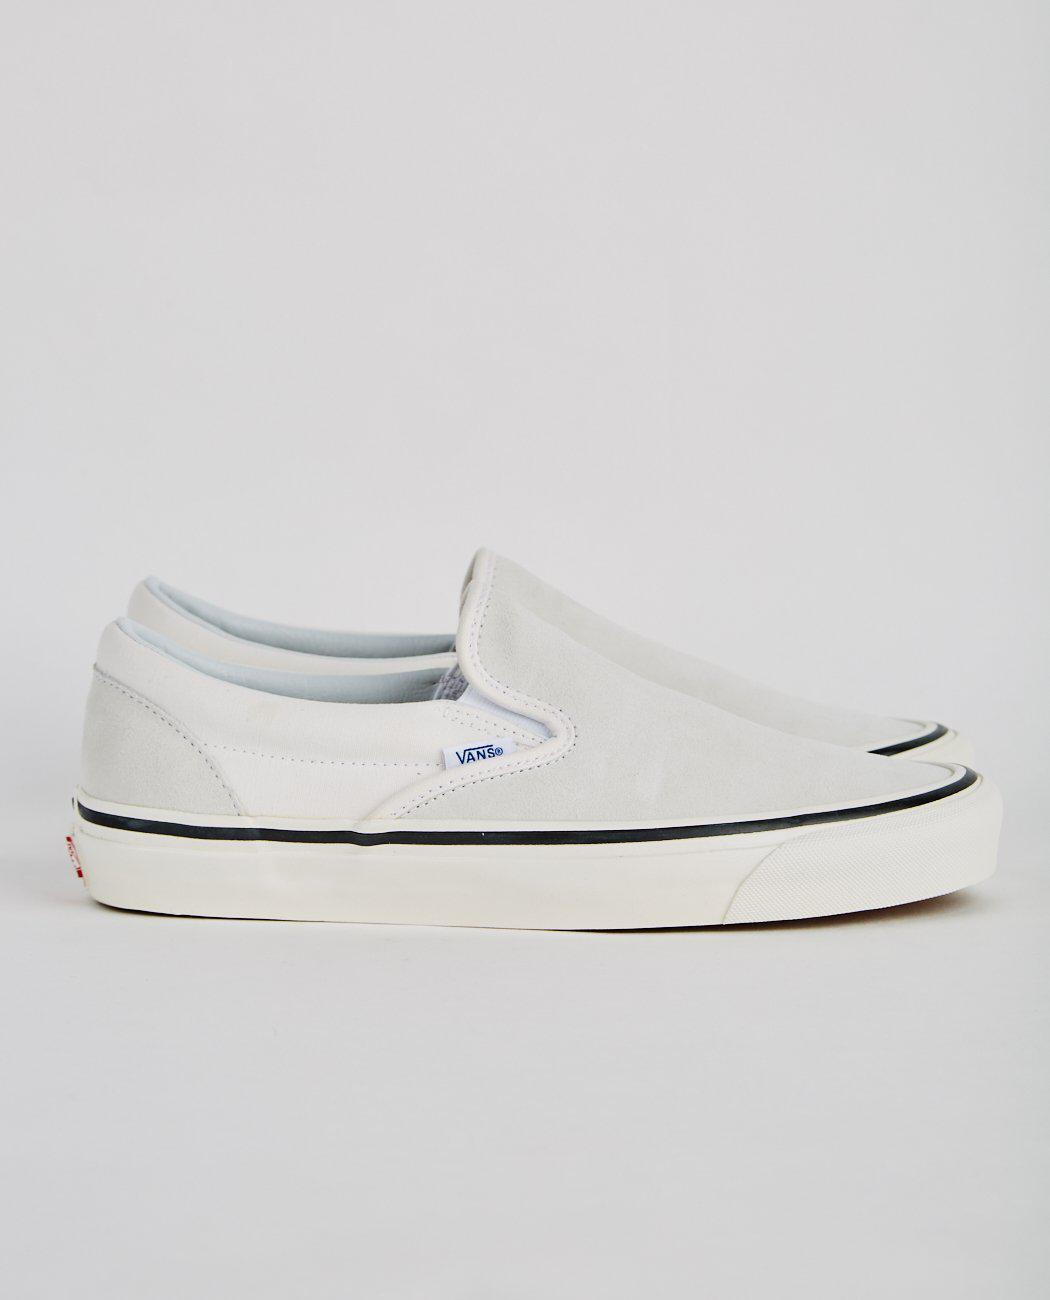 Lyst - Vans Classic Slip-on 98 Dx in White for Men 44f8f6050